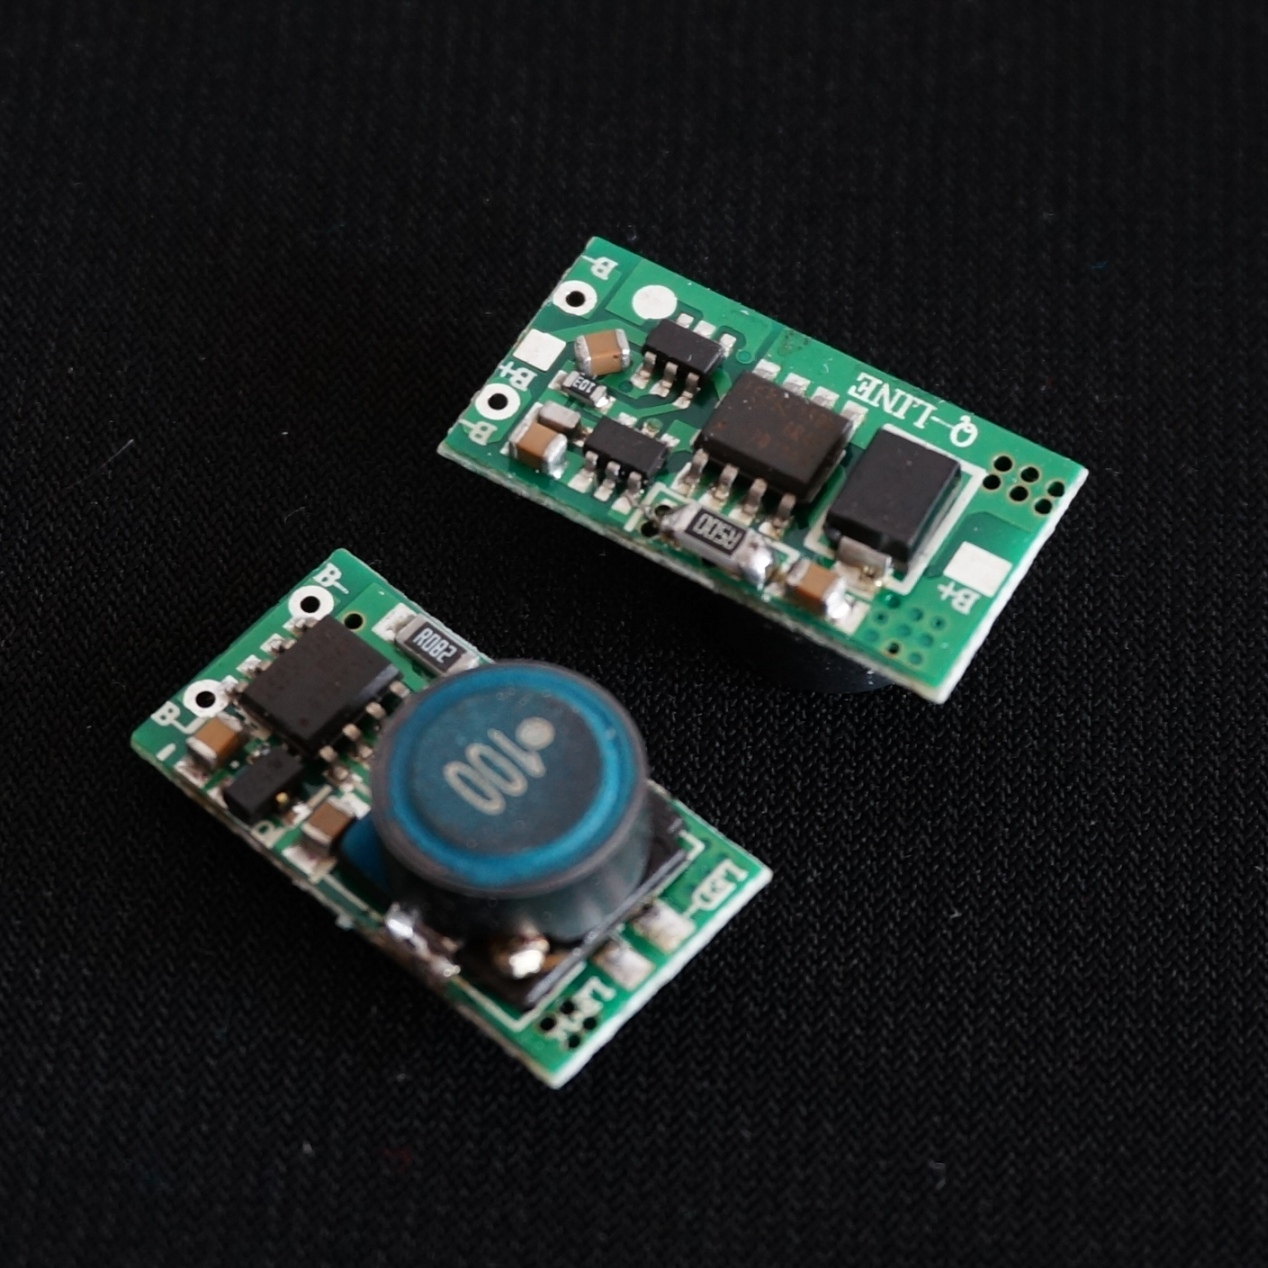 3.5W NDB7A75 High Power Blue Light Drive Circuit 4.5A Constant Current Band Slow Start And Step Down Three Stage Dimming